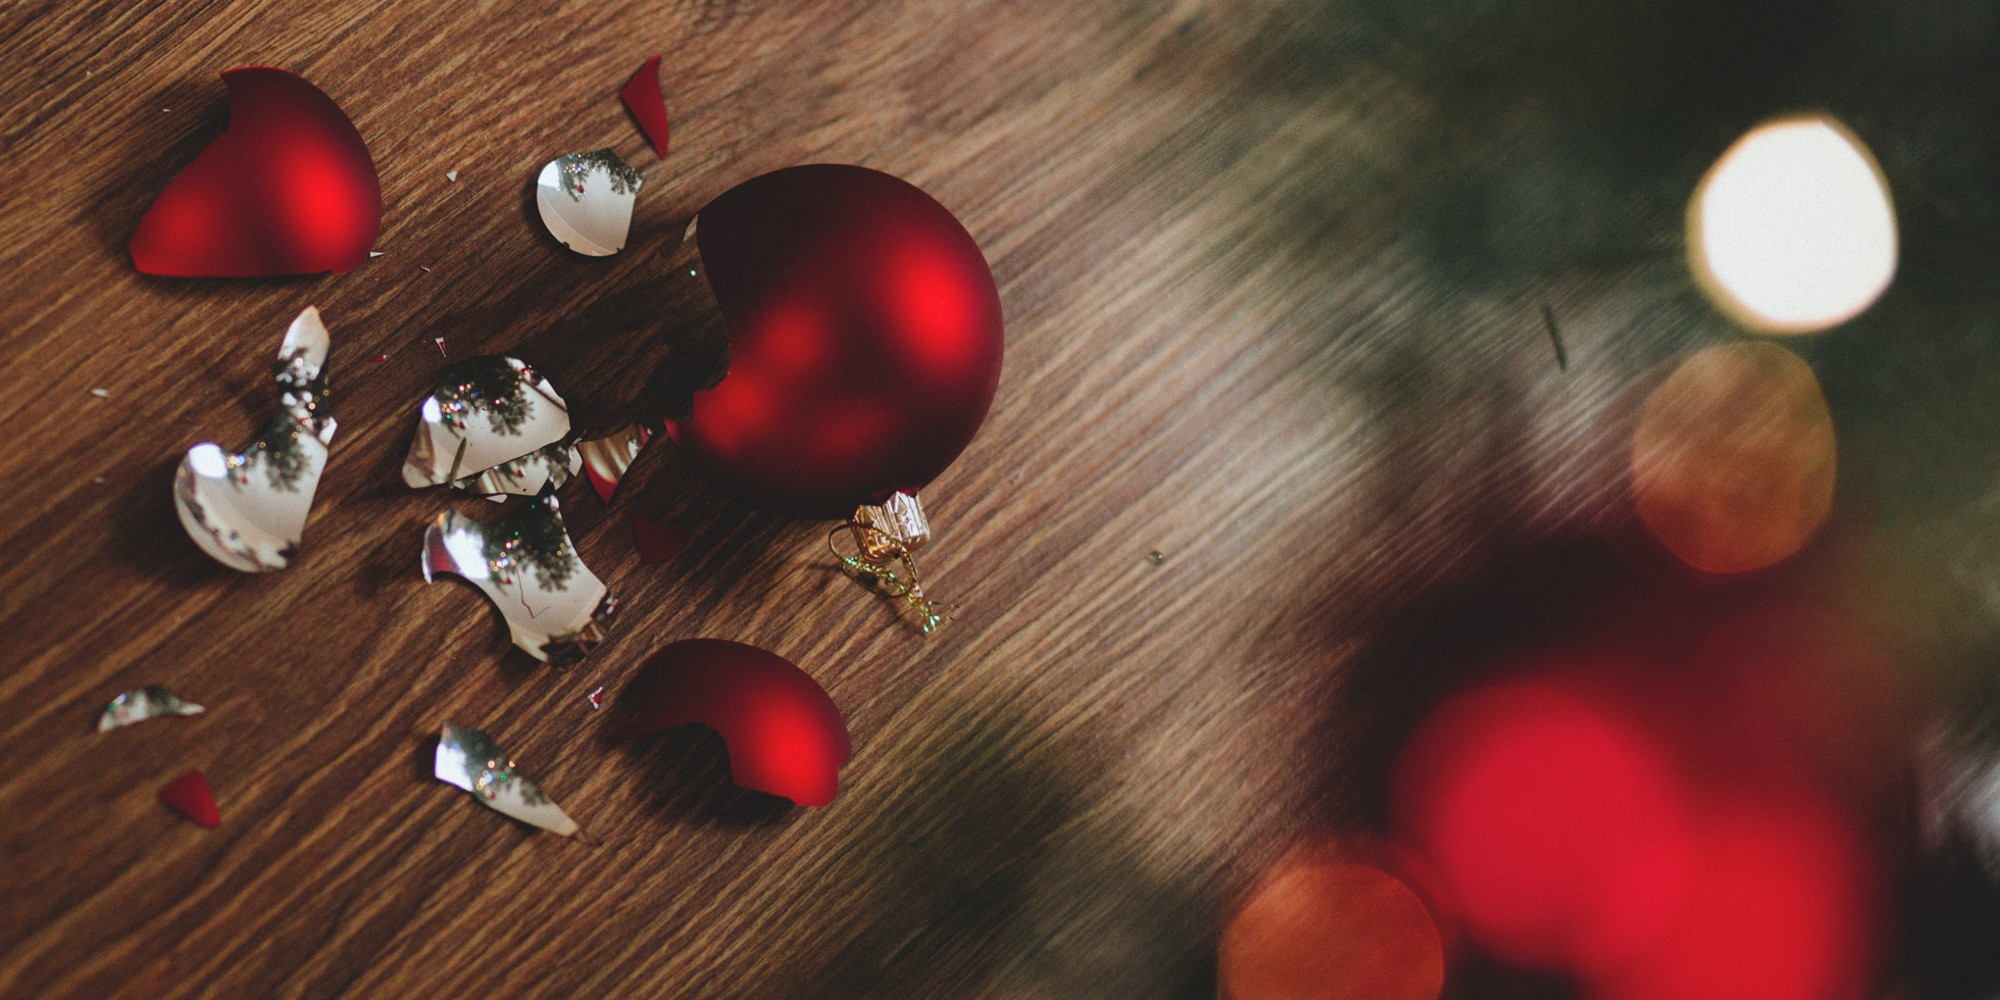 A broken bauble lies smashed by the Christmas tree